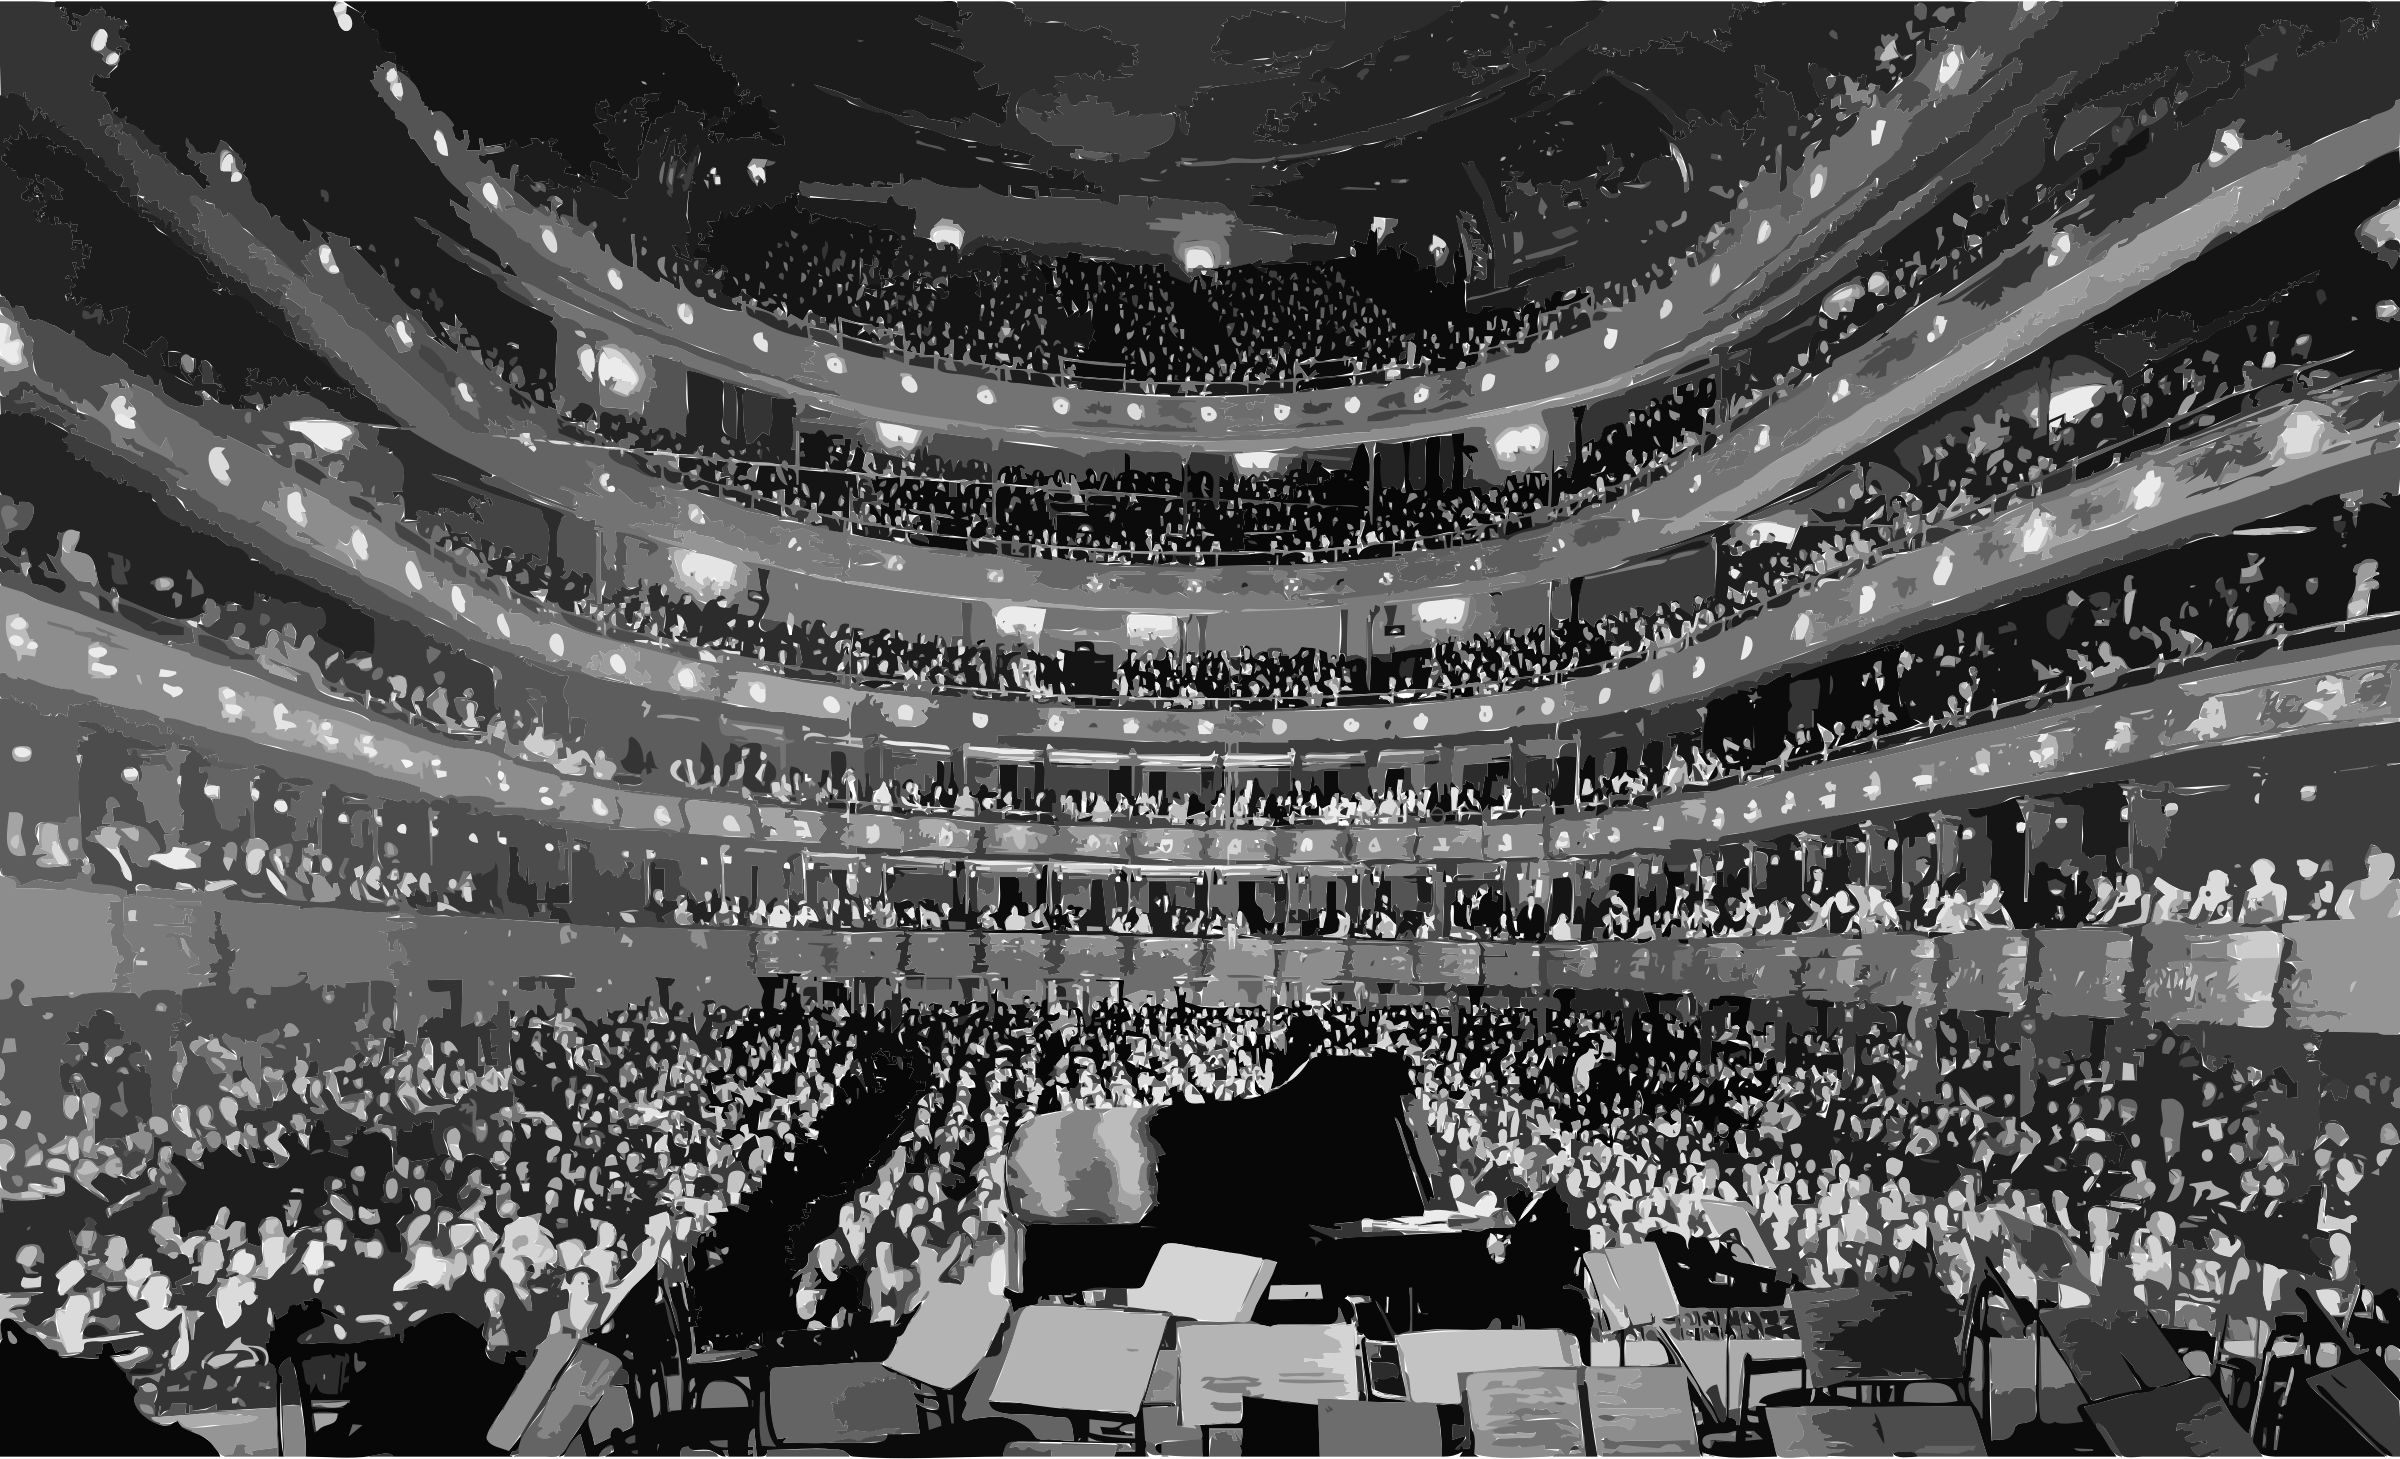 Metropolitan Opera House, a concert by pianist Josef Hofmann - NARA 541890 - Edit by 3we2nn+8w9uc0fun68aw